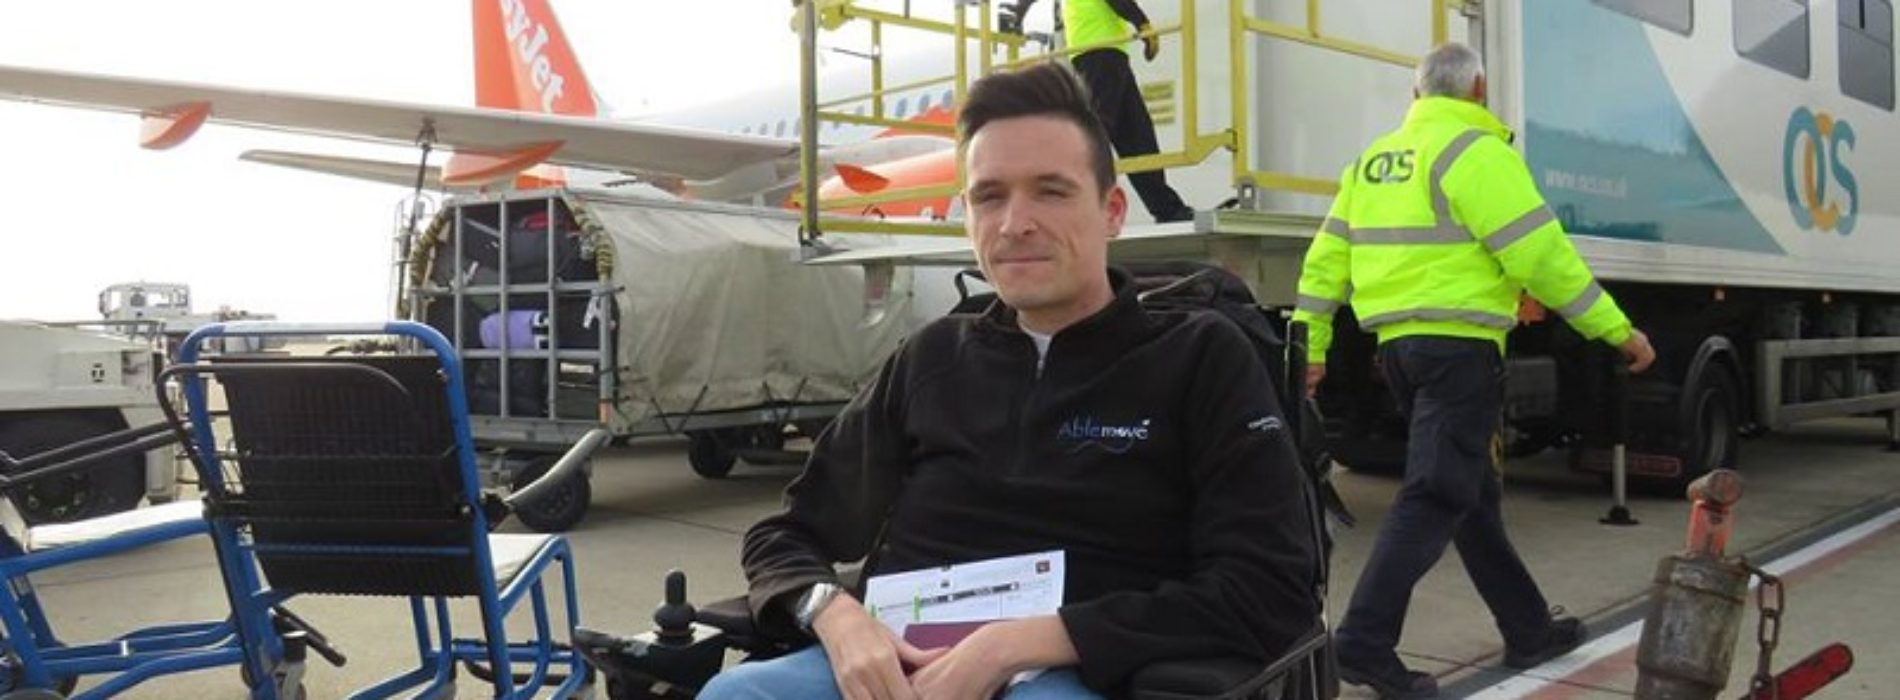 Disabled entrepreneur Josh on his invention to help wheelchair users travel more easily